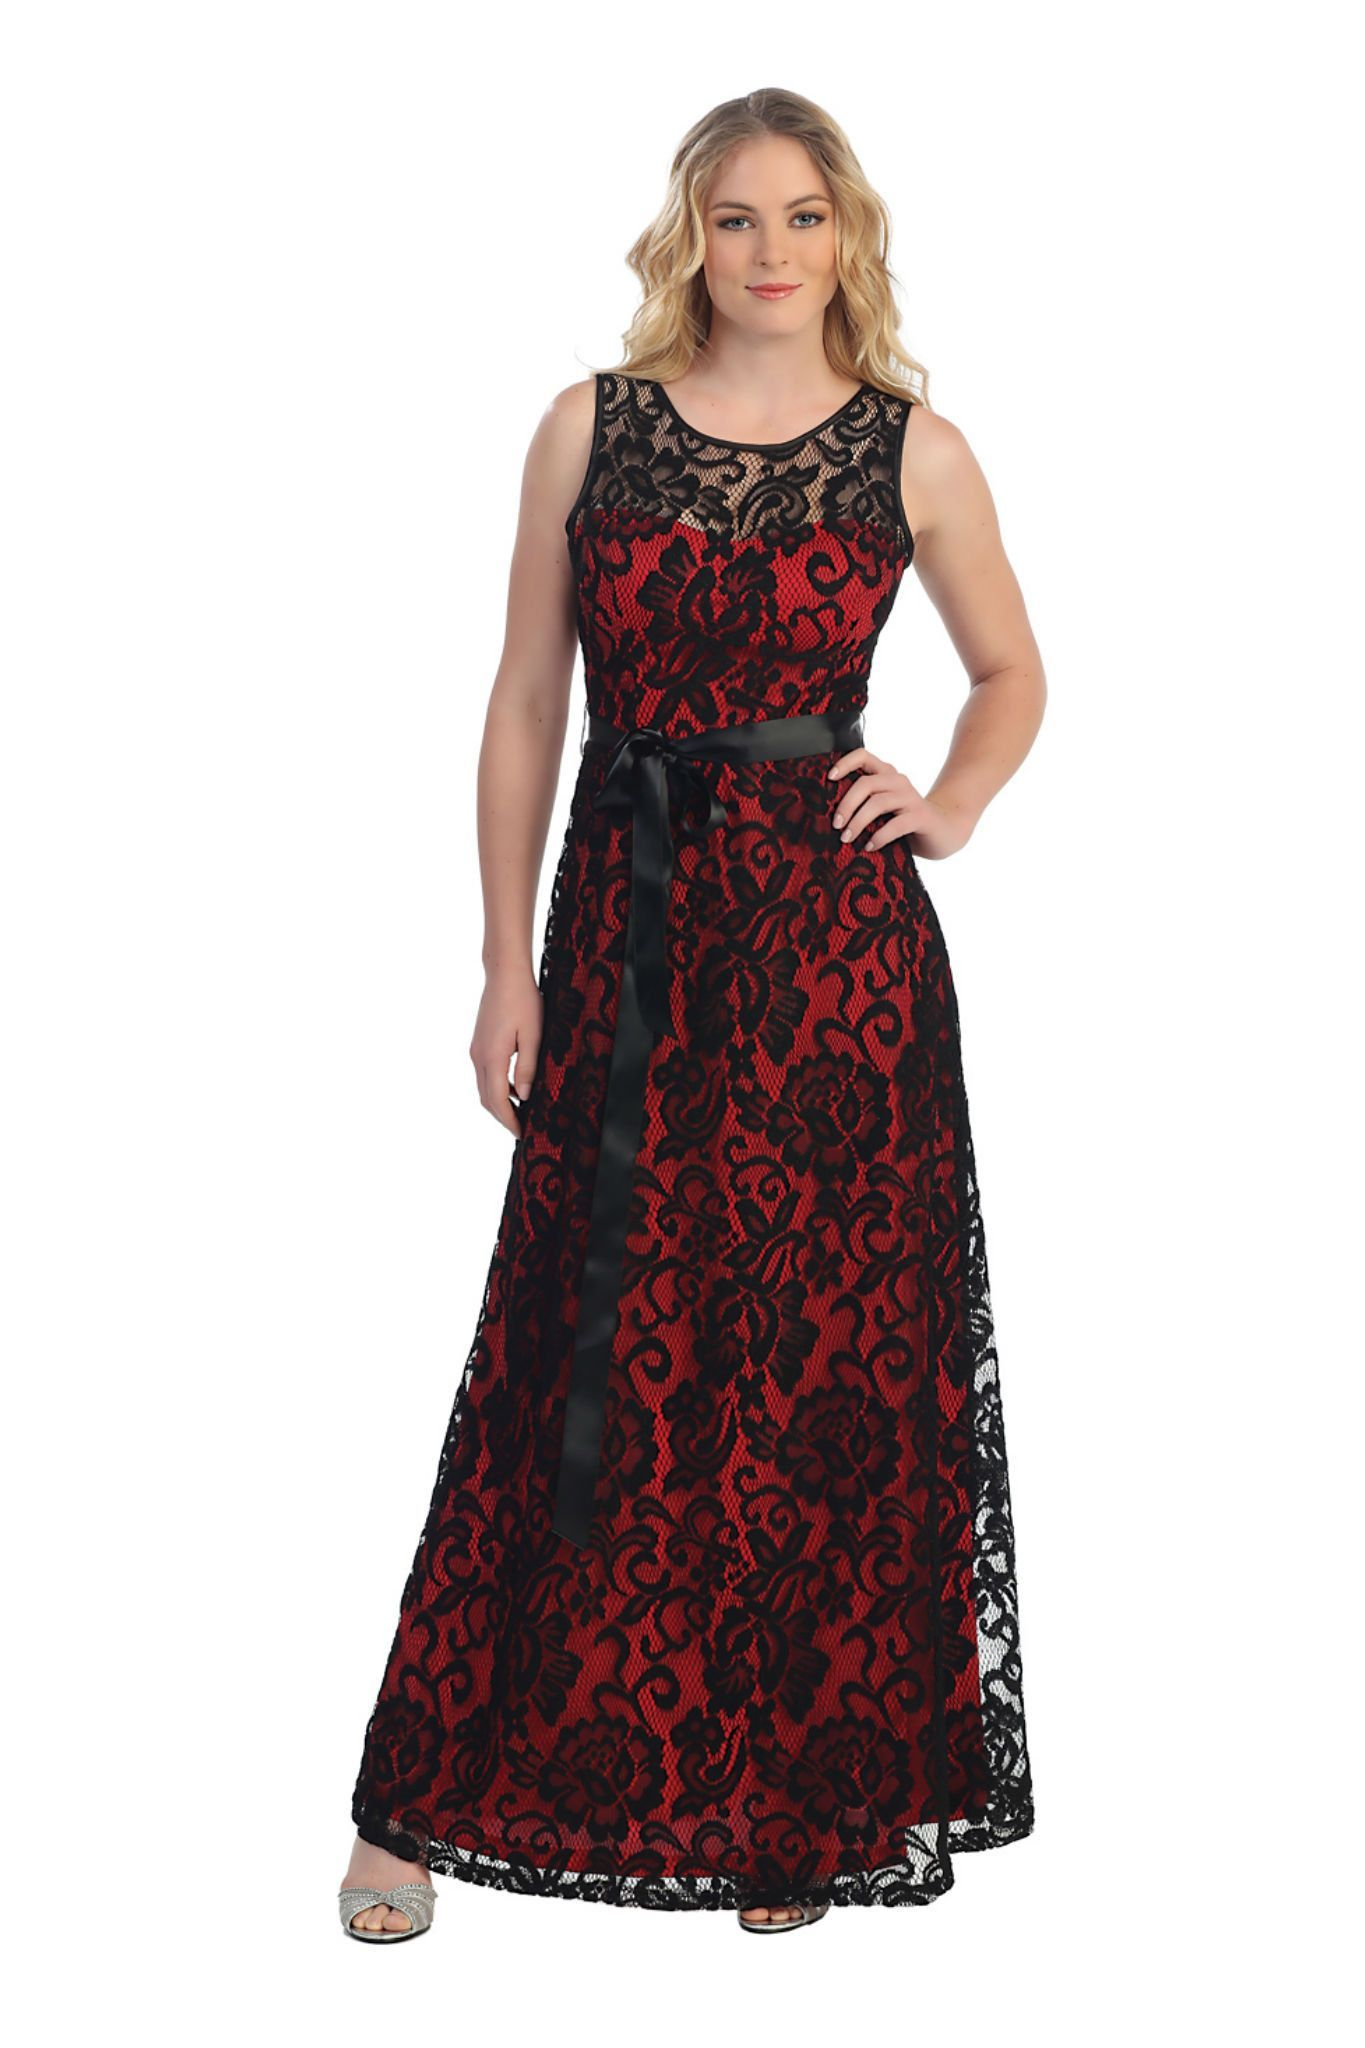 Bohemian lace long plus size formal party dress with